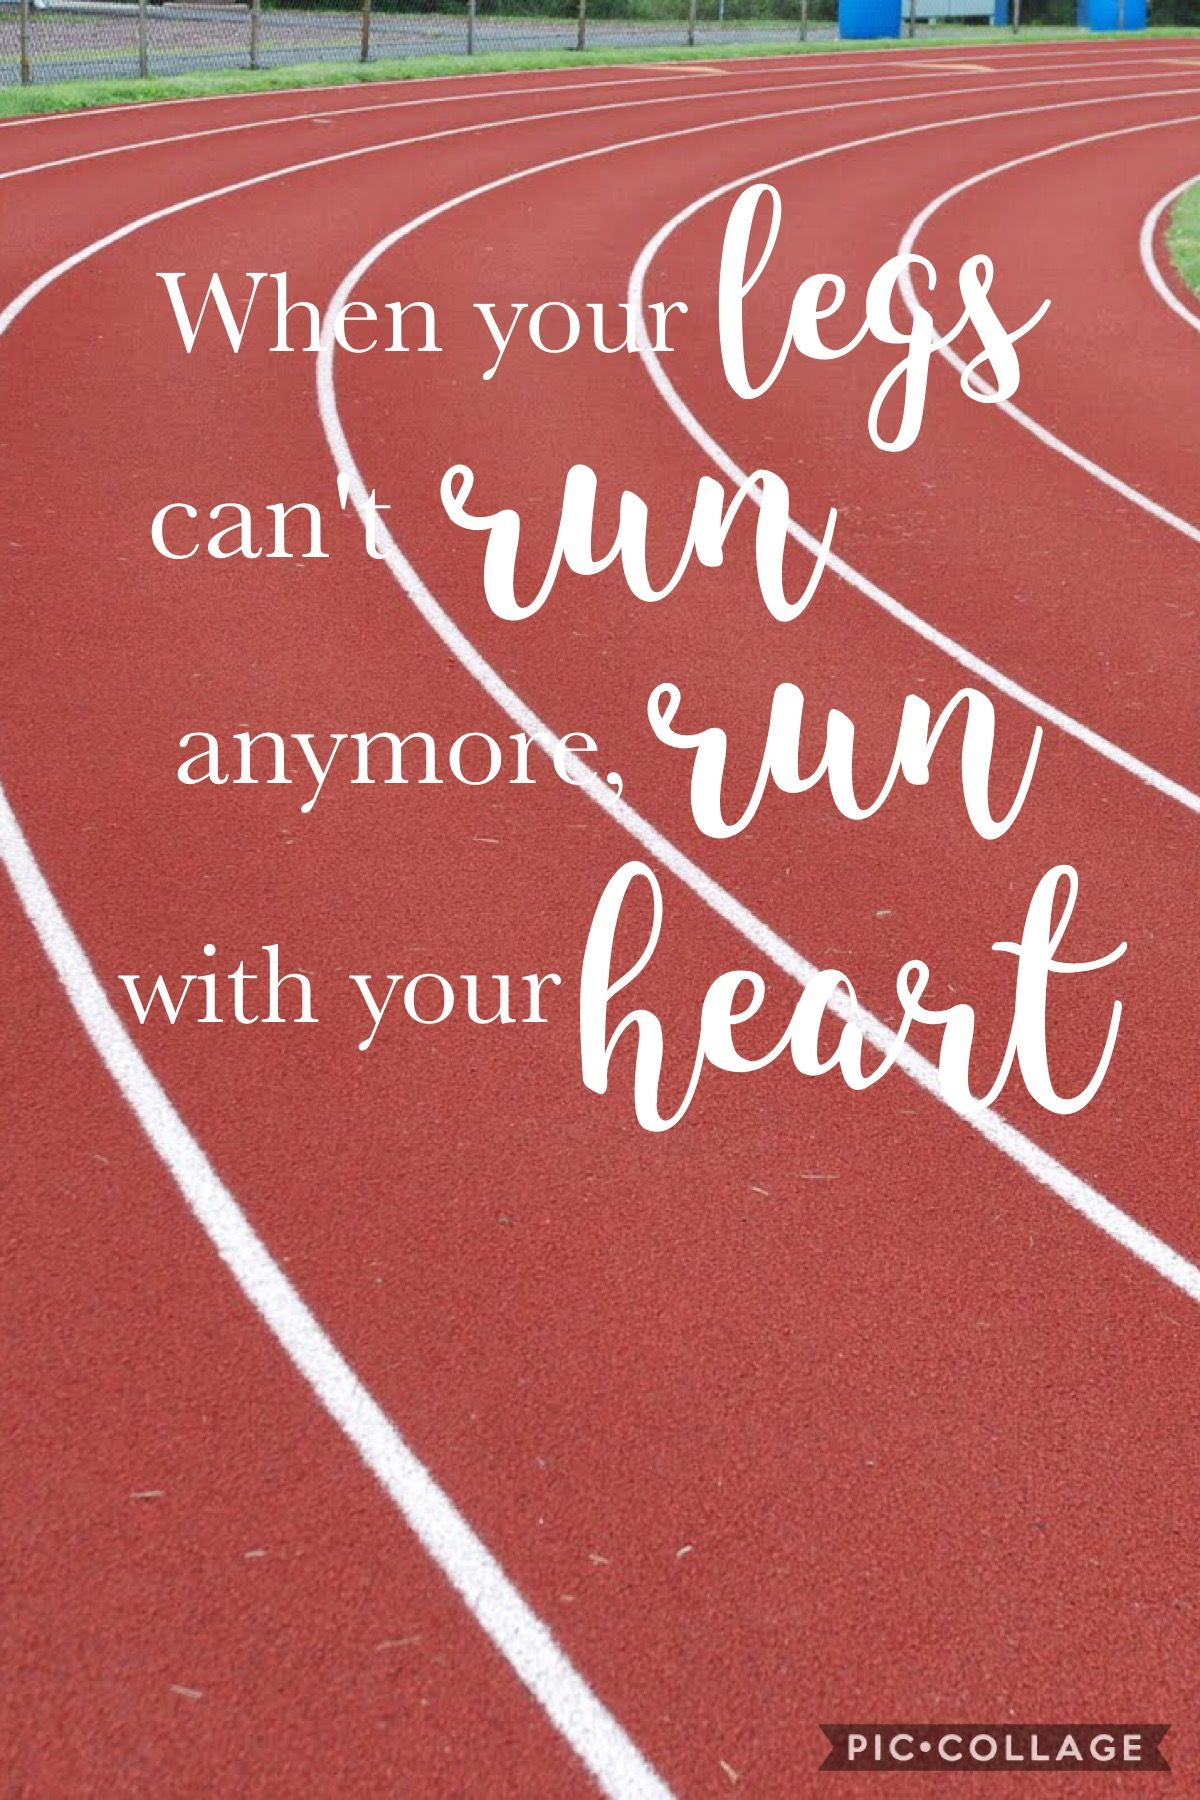 Track And Field Quotes | Katieloehr2 Laufen Pinterest Running Track Und Running Motivation